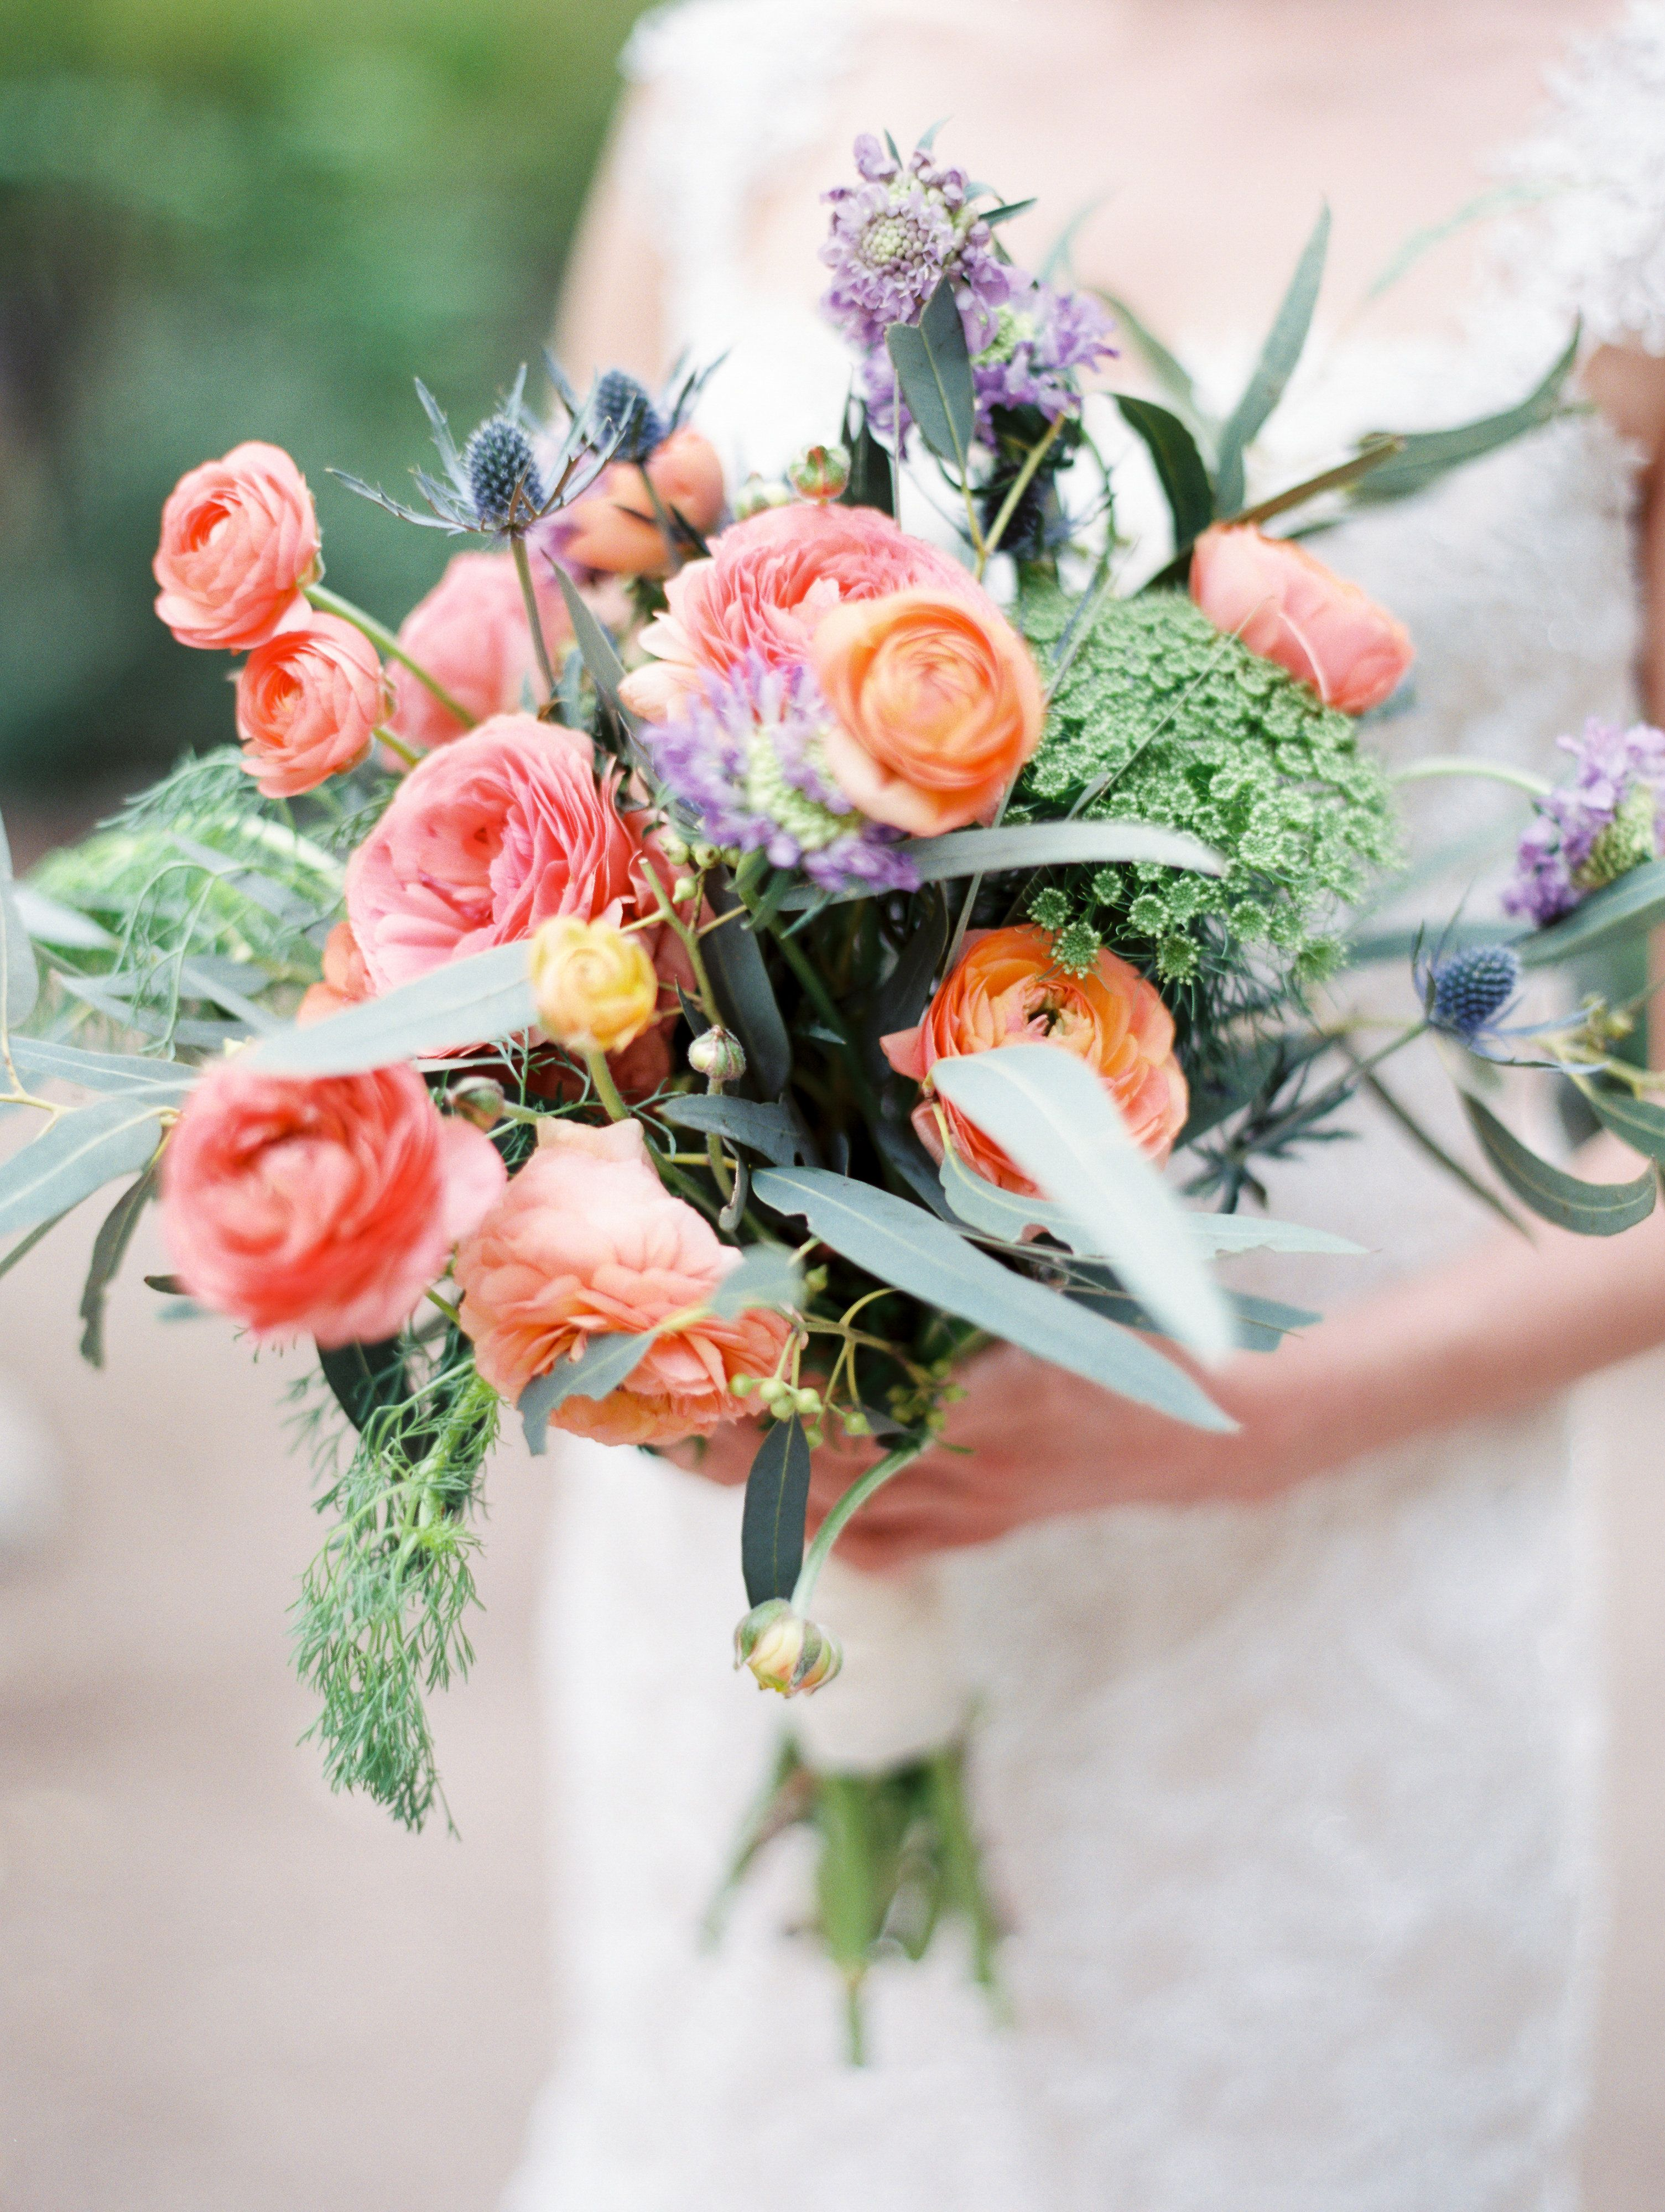 A Bright Rustic Wedding Bouquet By Cactus Flower Florists